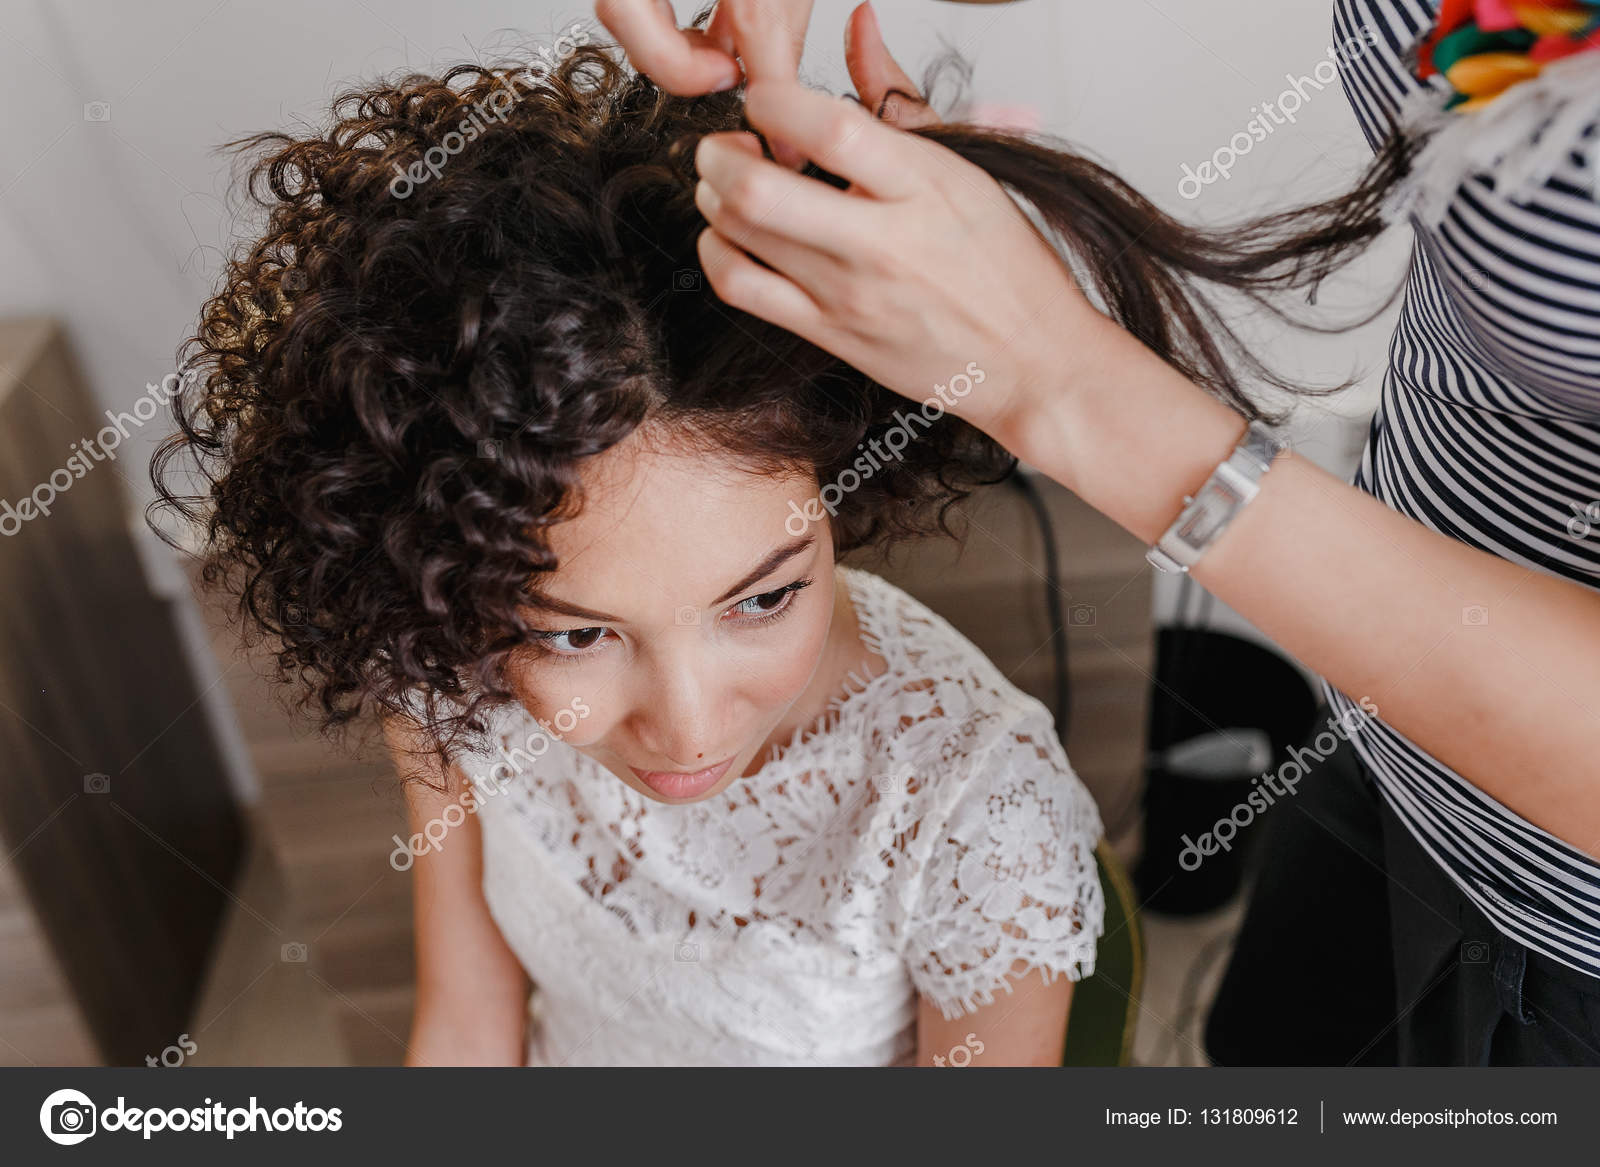 Professional Hairdresser Artist Making Curly Hairstyle To Charming